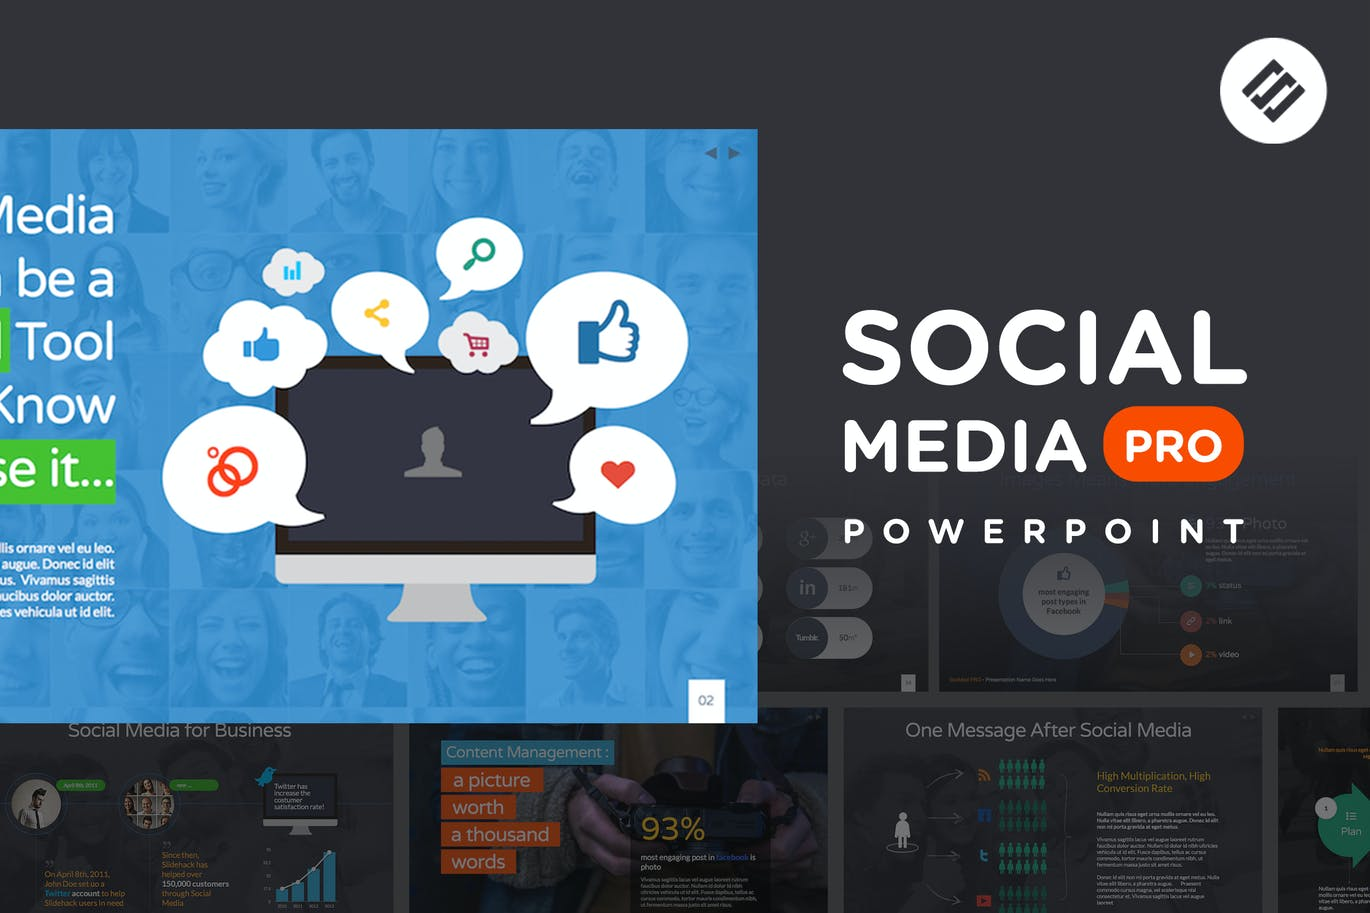 Social Media PRO - Powerpoint Template by Slidehack on Envato Elements